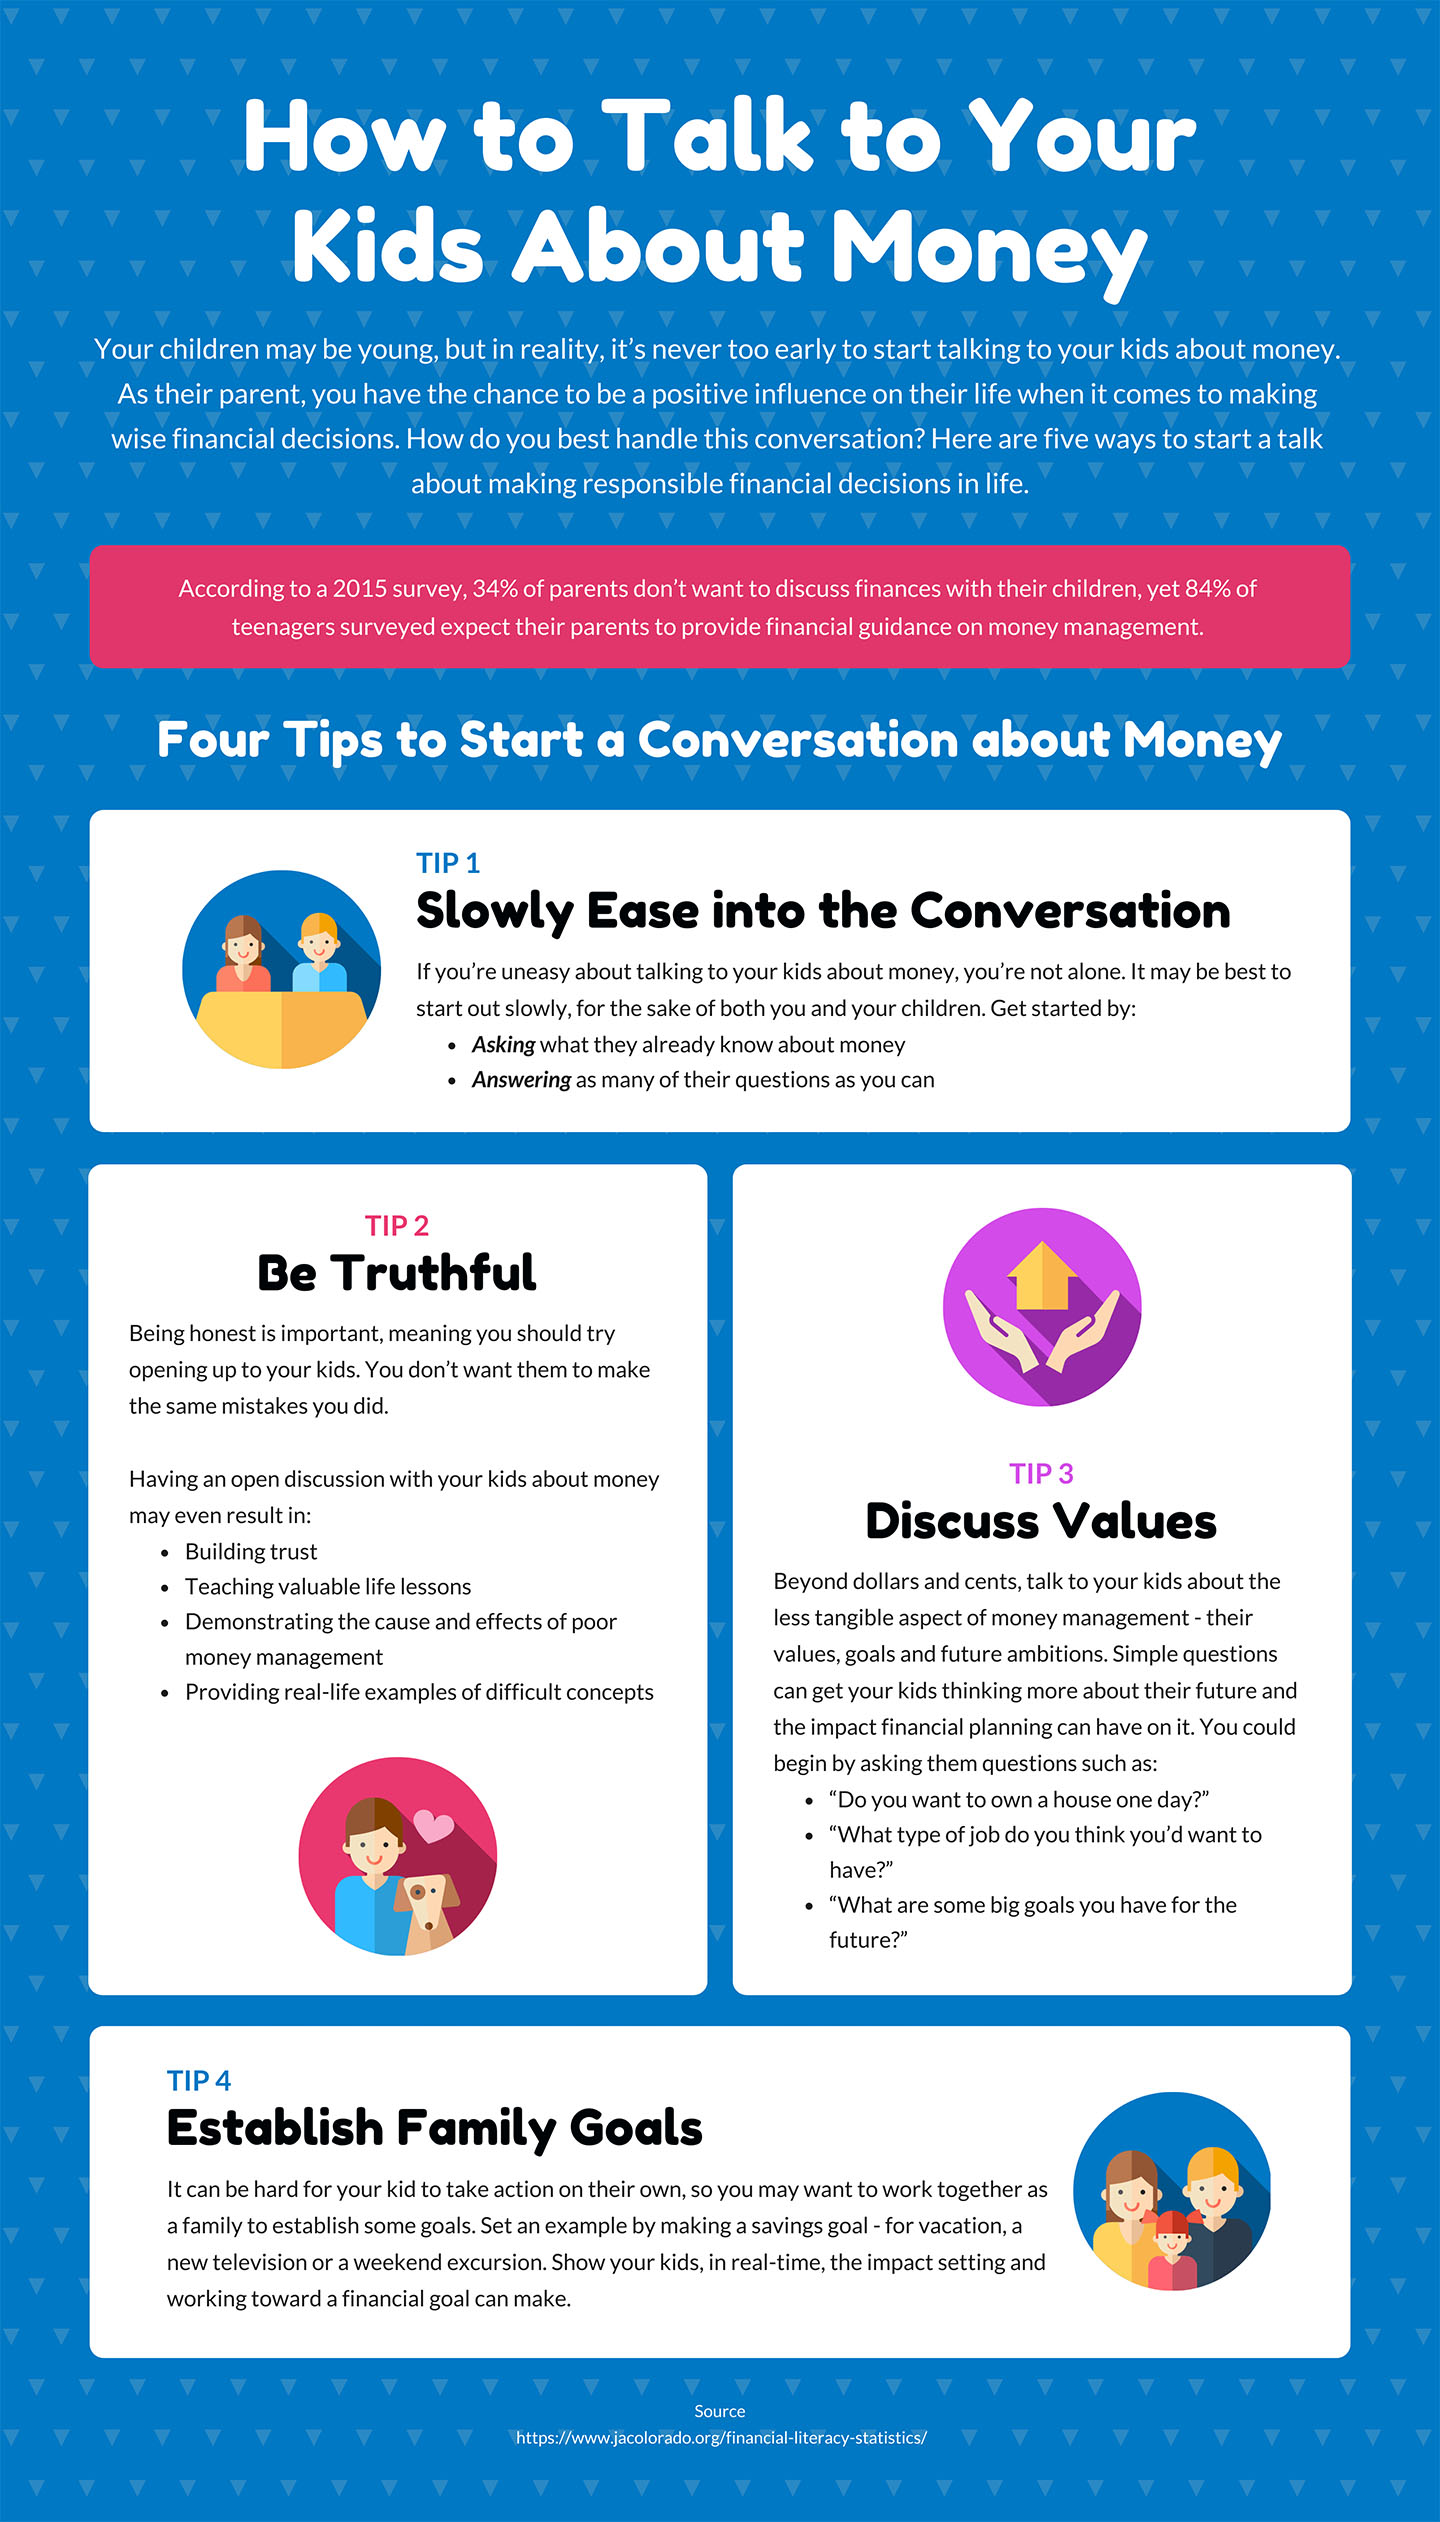 How to talk to your kids about money infographic